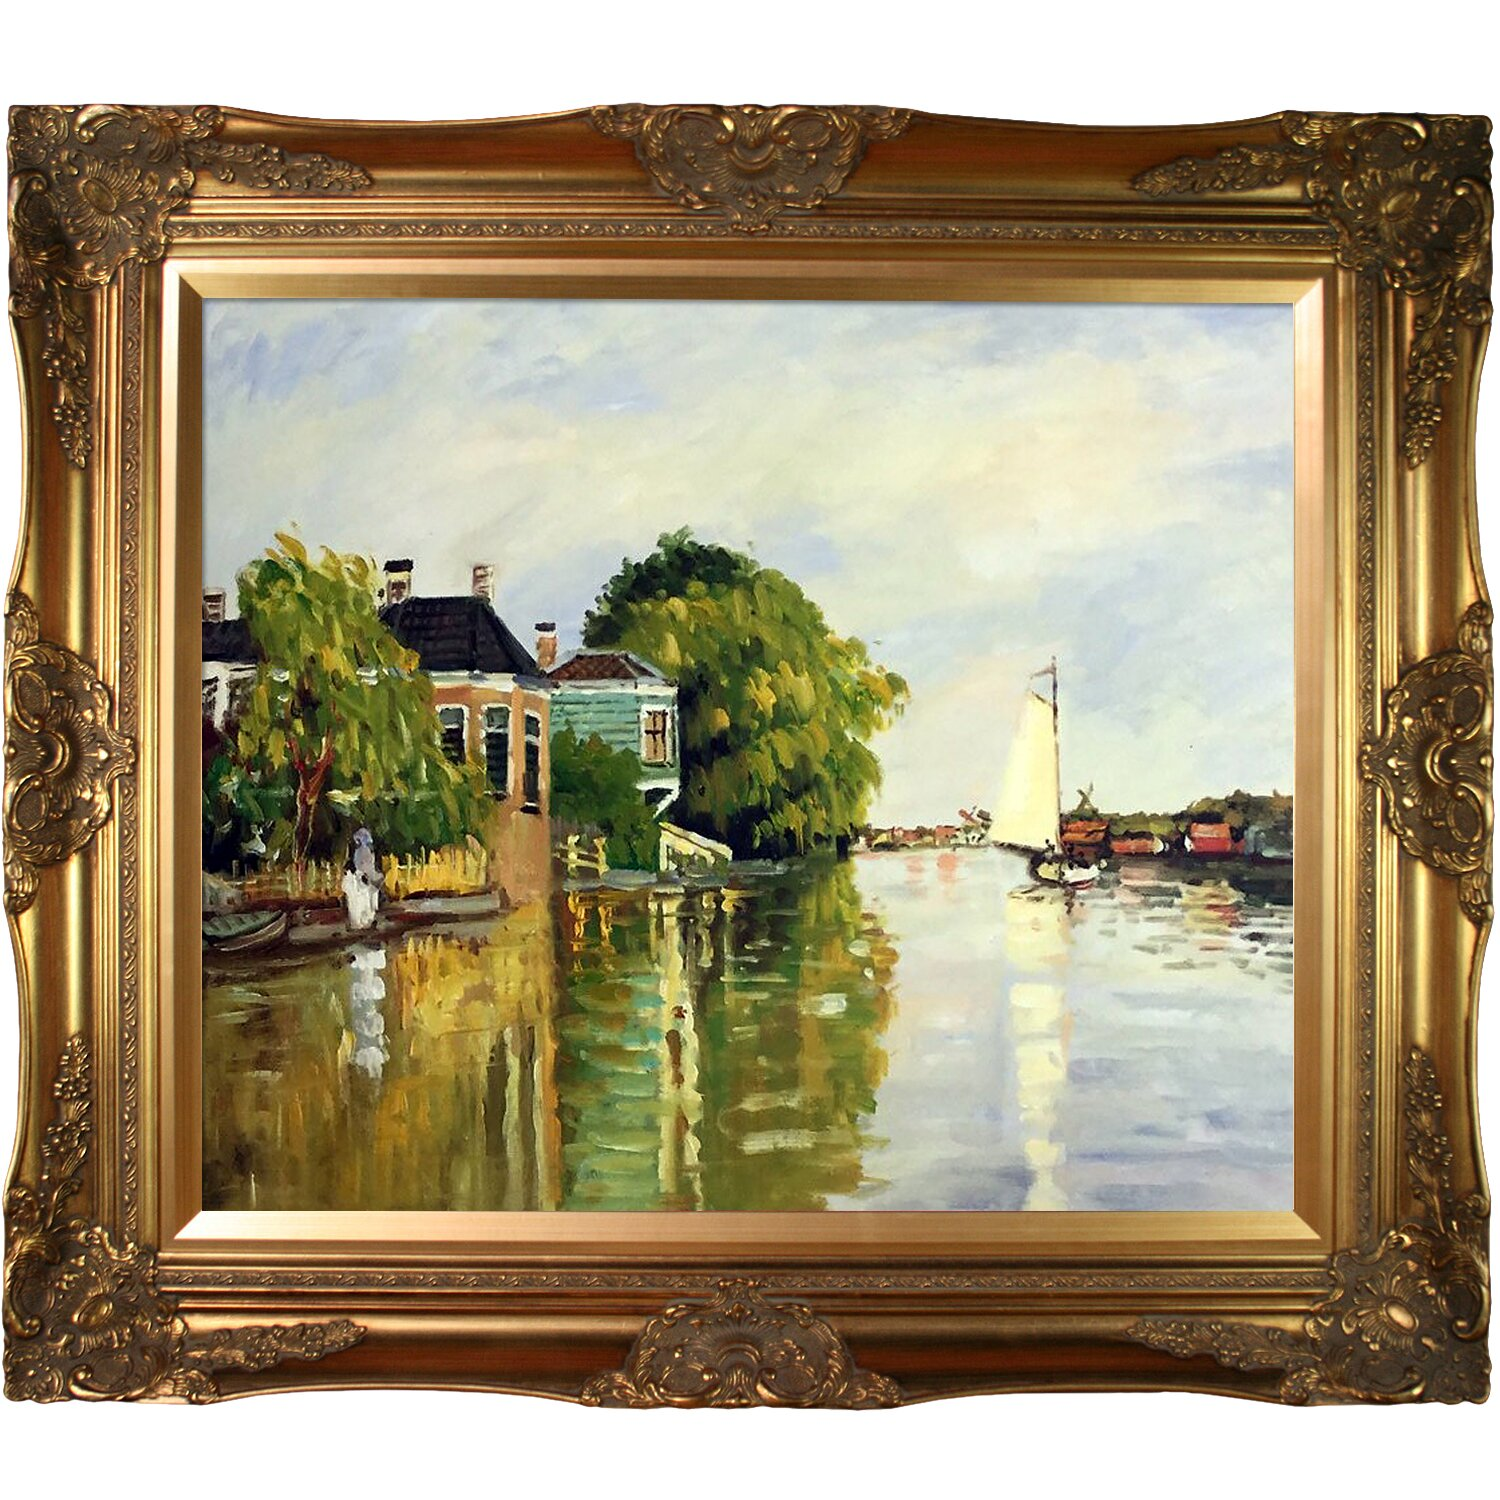 Tori Home Houses On The Achterzaan By Claude Monet Framed